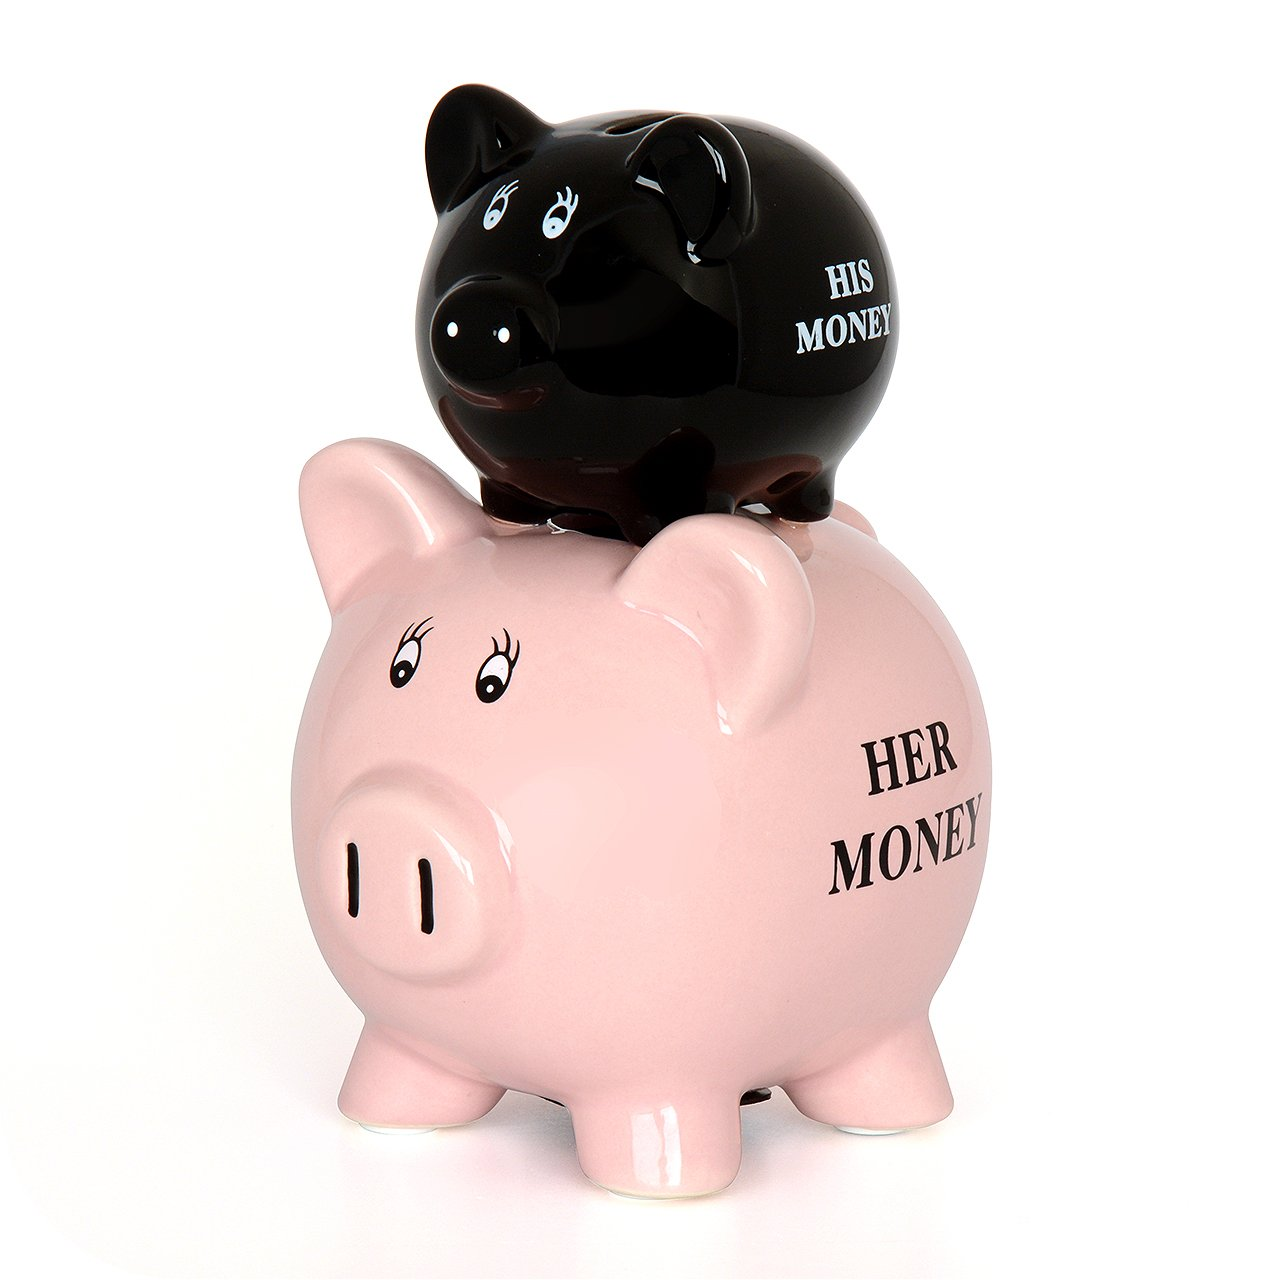 CKB LTD IGGI - His/Her Piggy Bank Ceramic Funny Money Coin box - 19cm - Pink & Black Gift House International GH-007